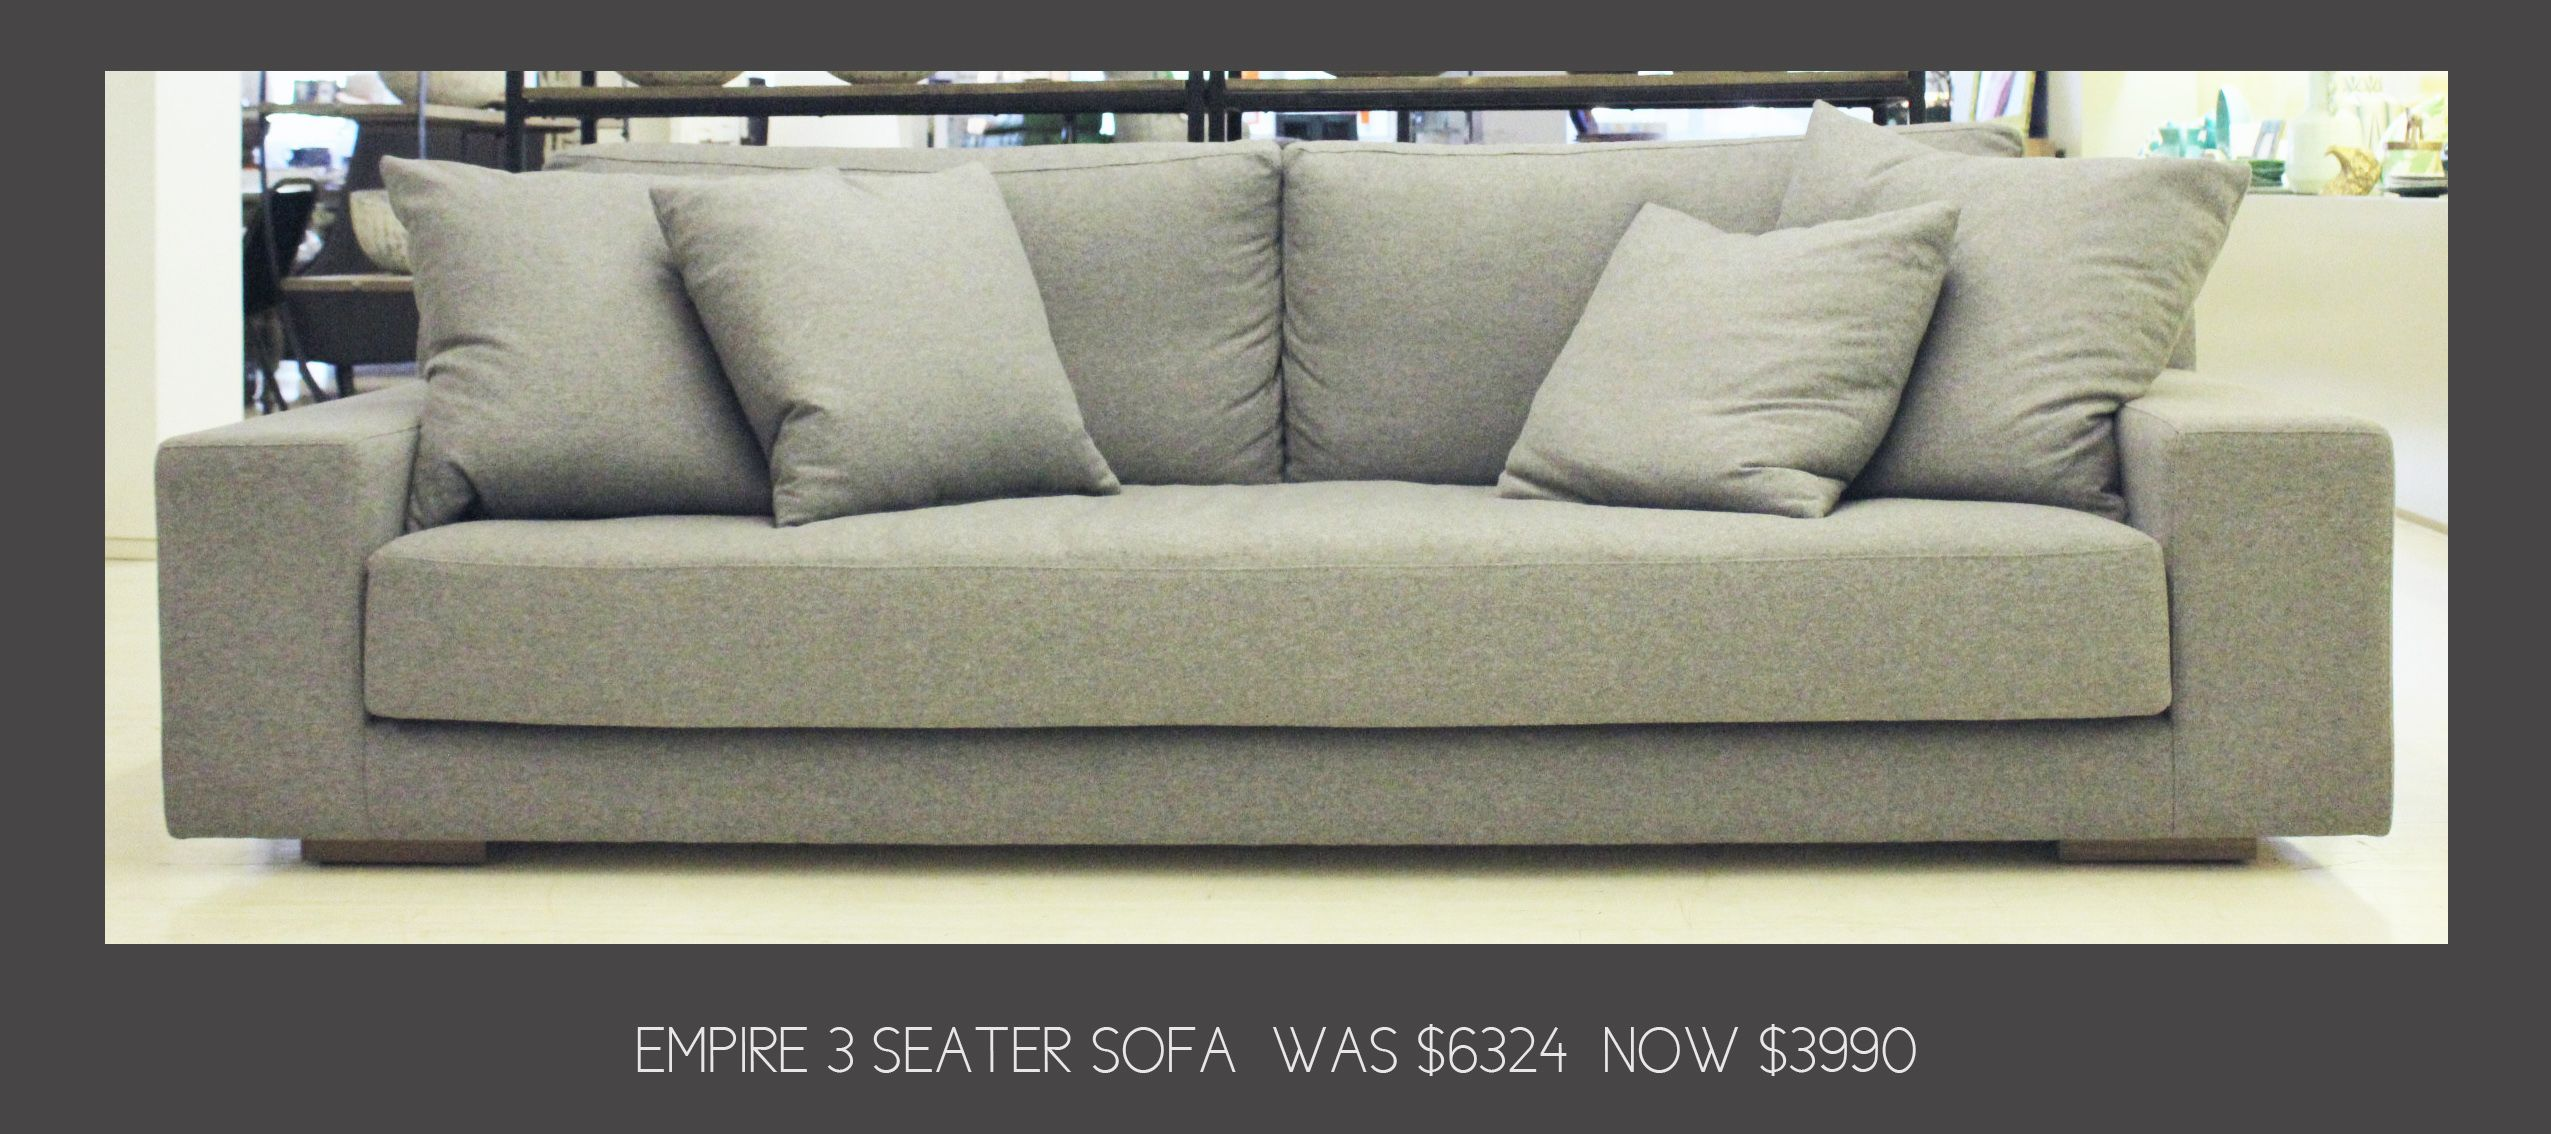 Hot pick from our clearance sale – Jardan Empire 3 Seater Sofa